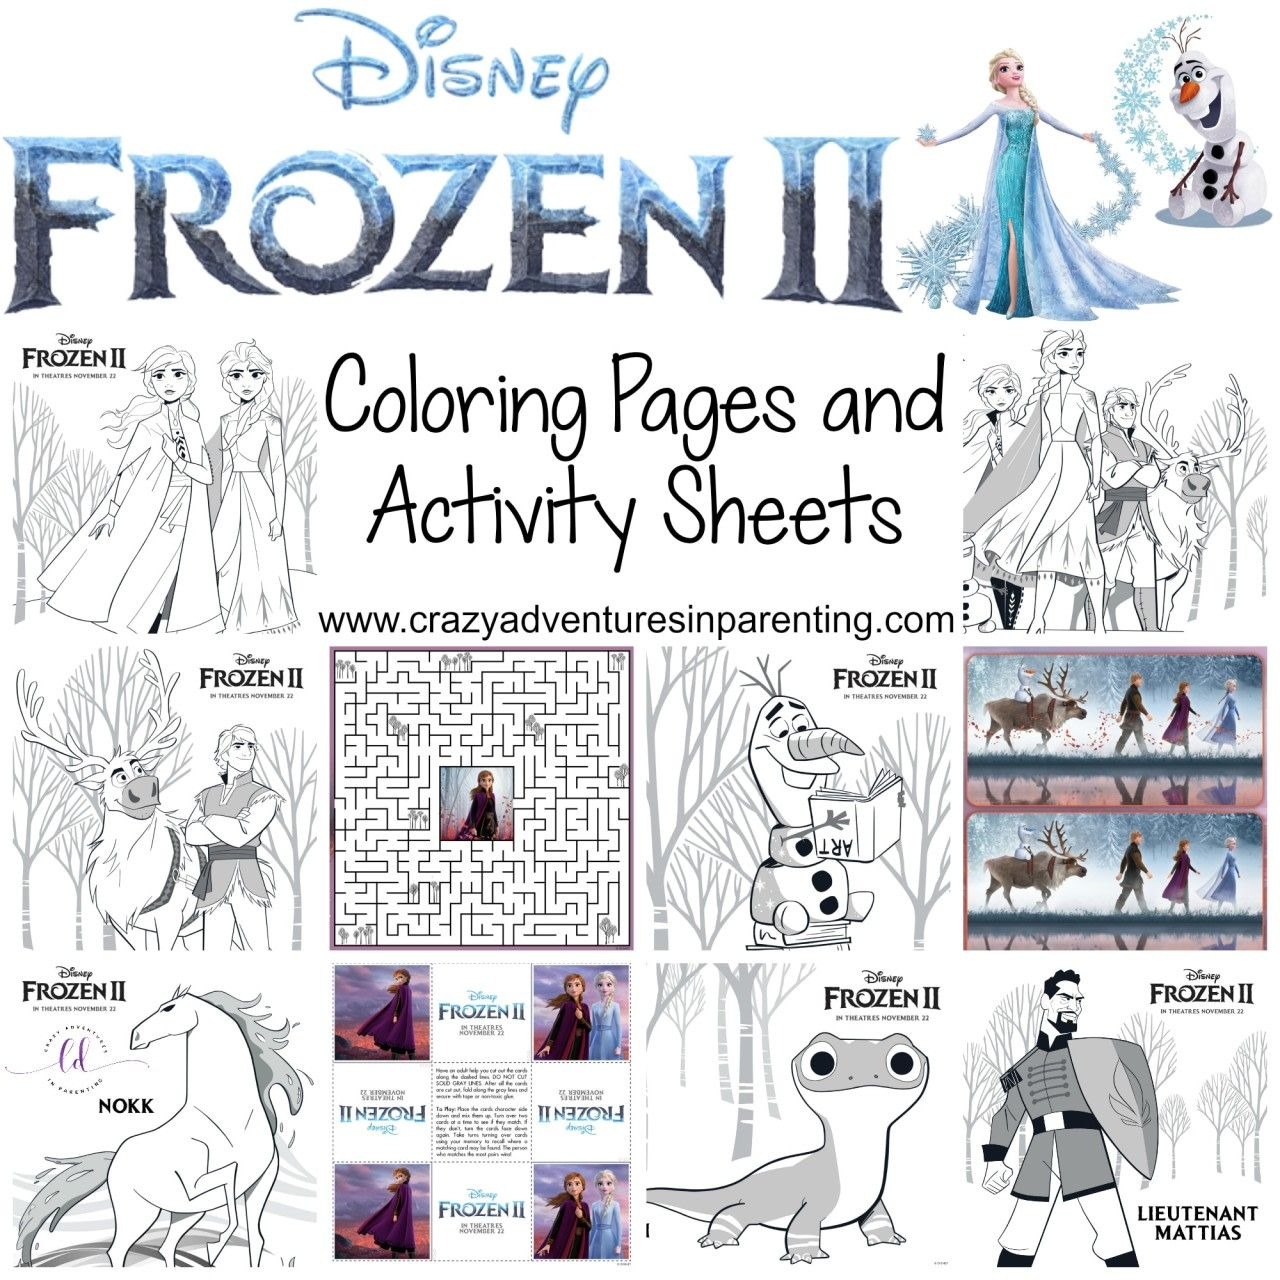 Free Printable Frozen 2 Coloring Pages and Activity Sheets   Activity sheets [ 1280 x 1280 Pixel ]